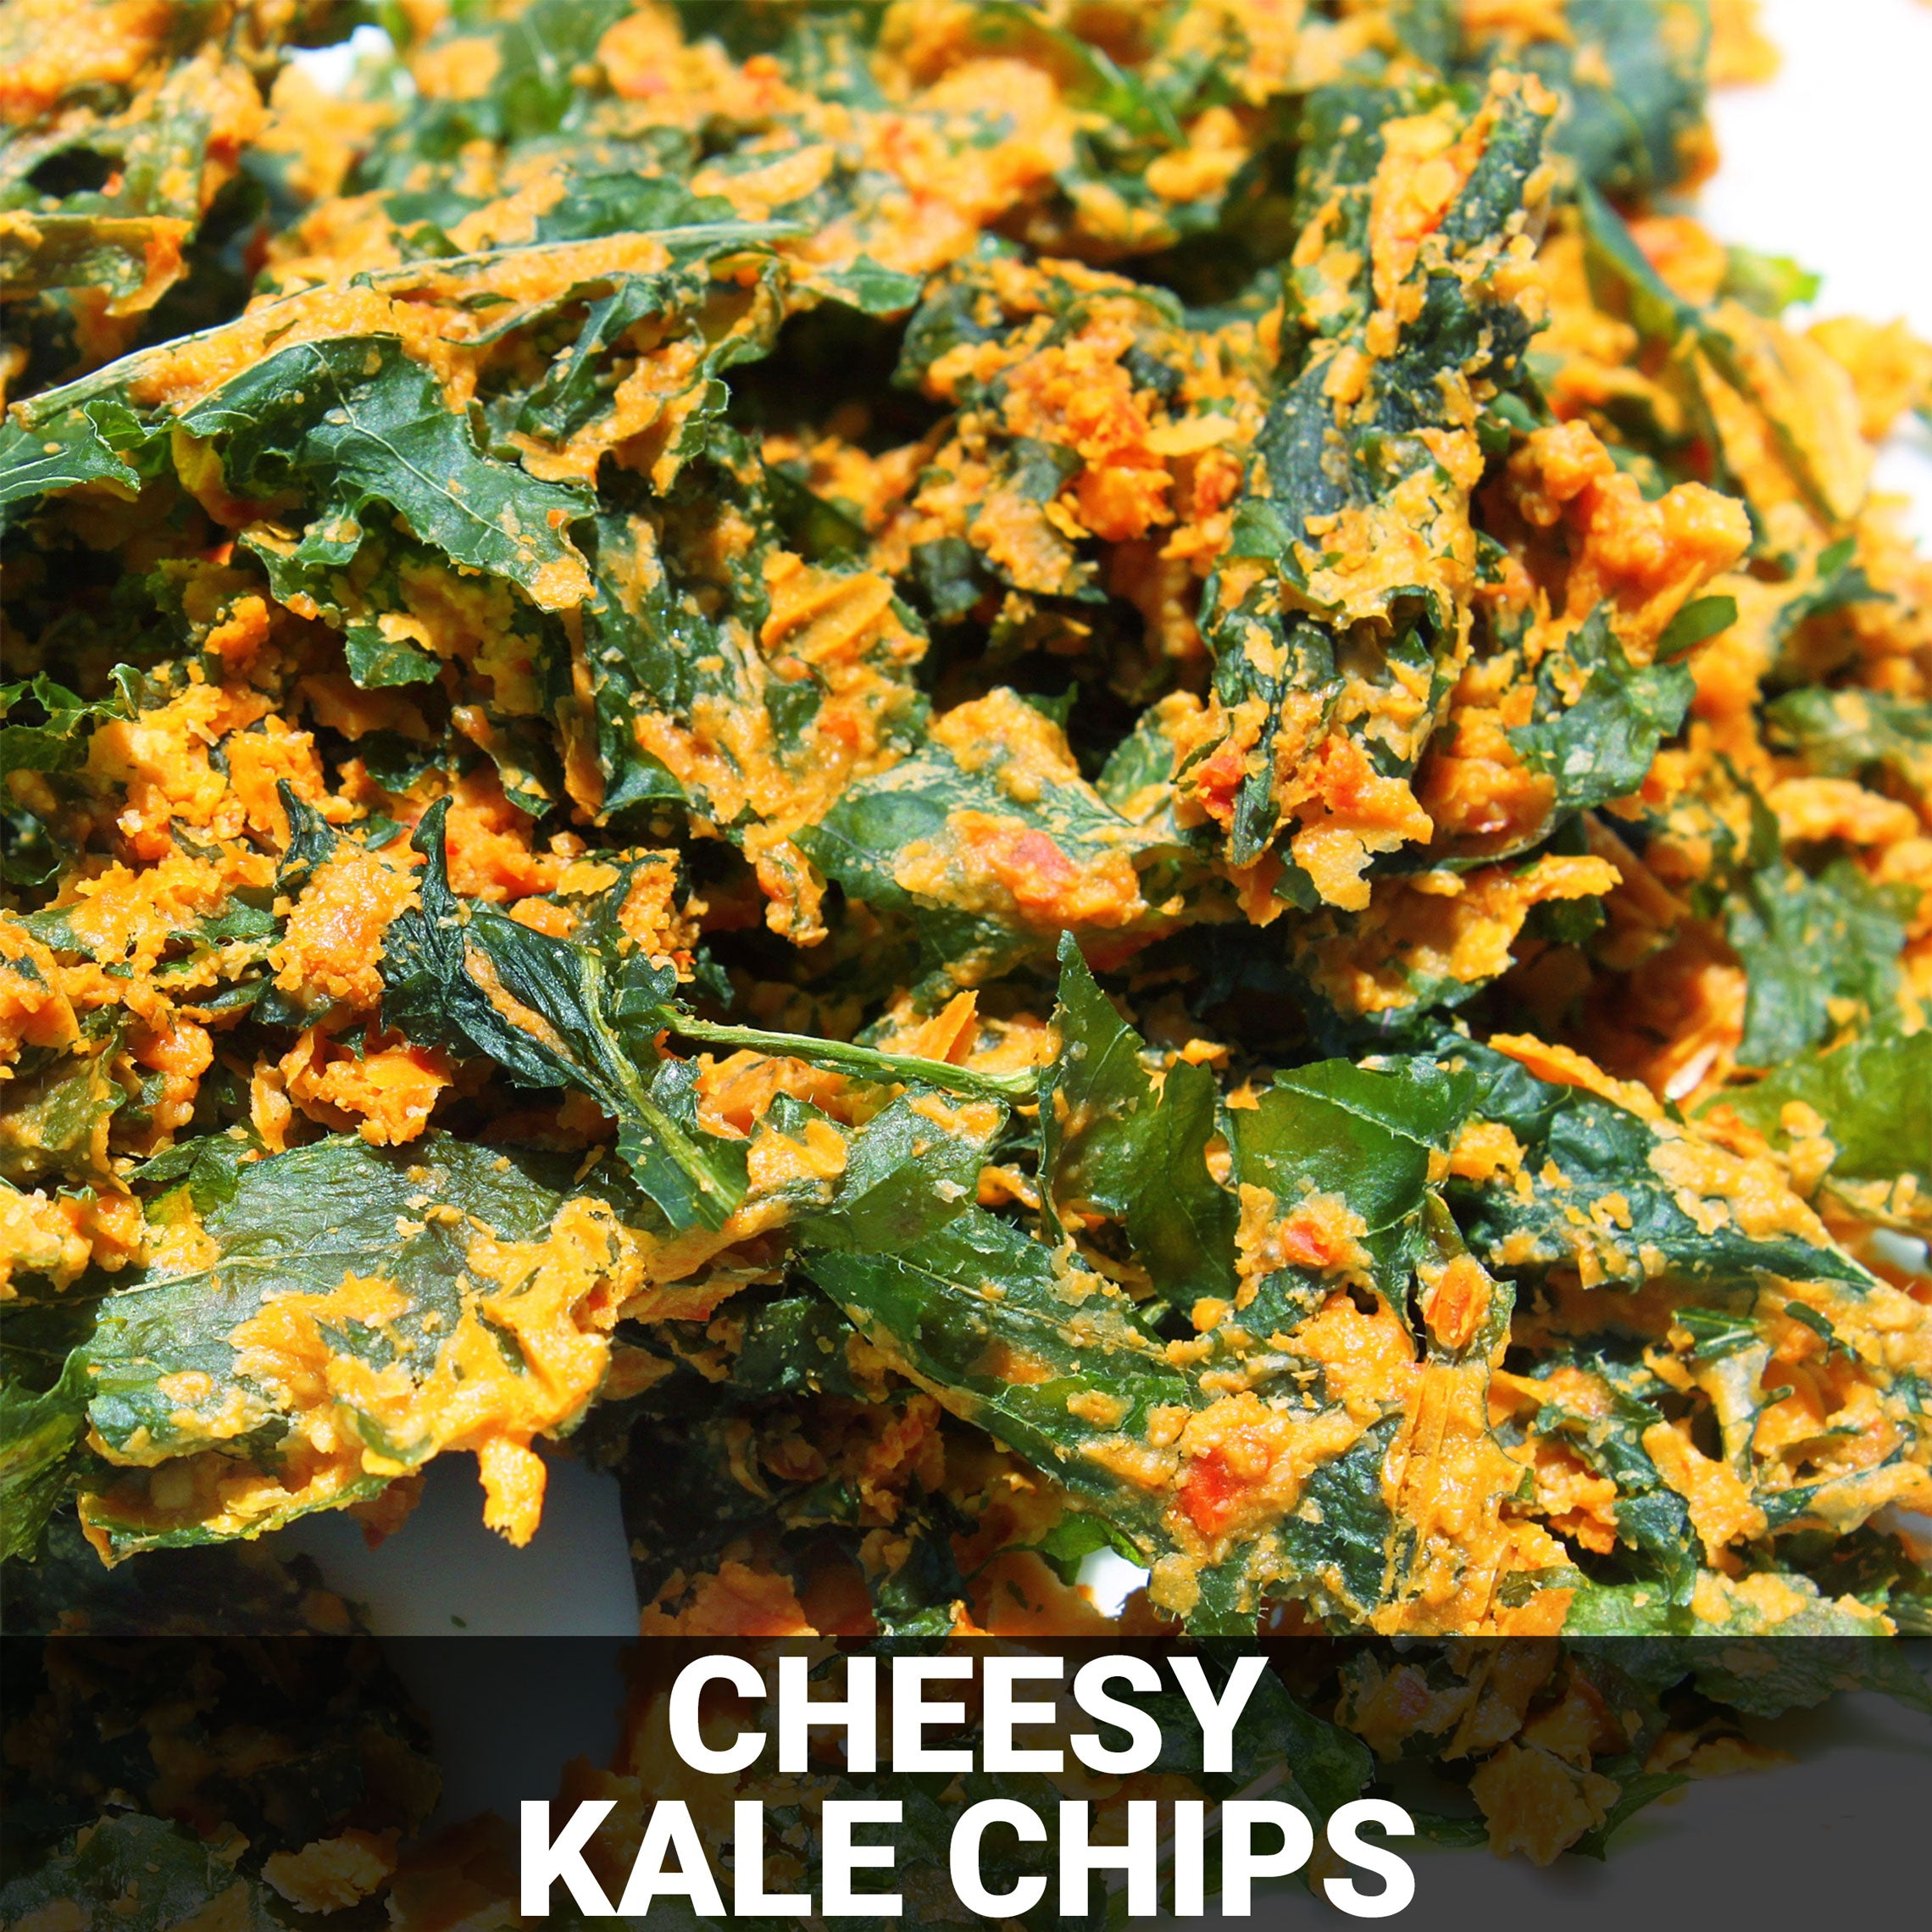 Cheesy Kale Chips Recipe - Foods Alive